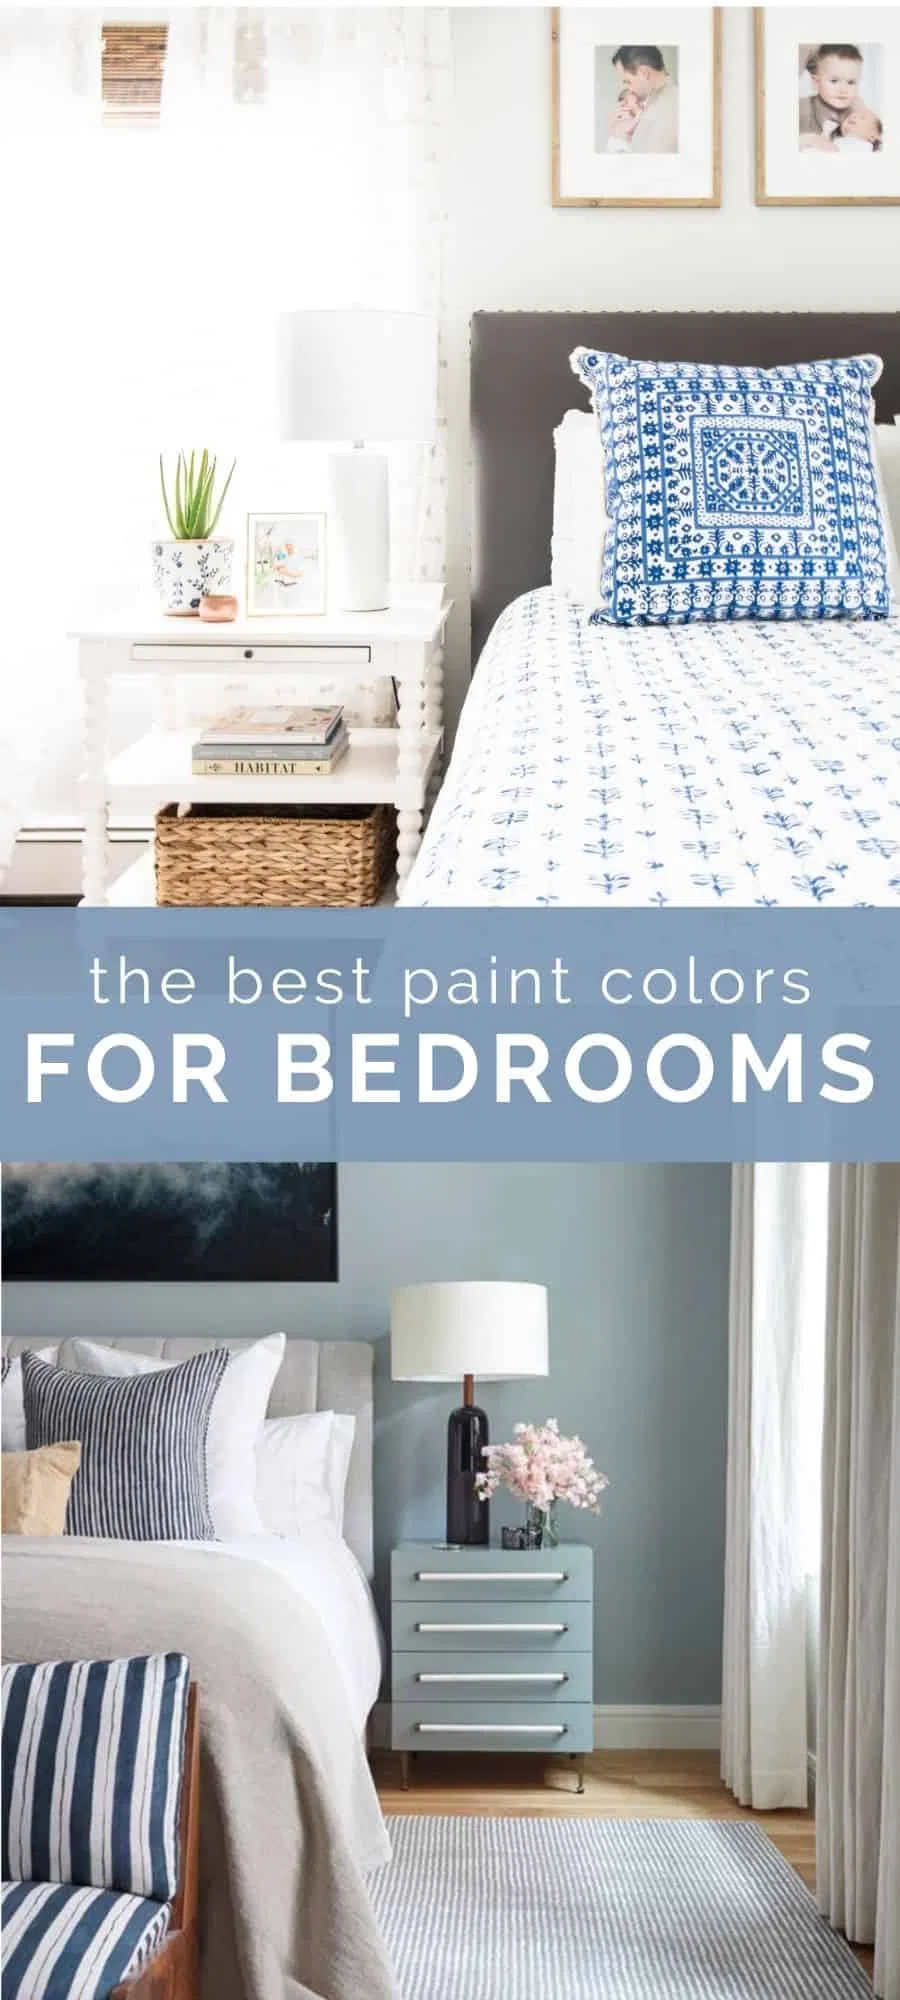 Bedroom Paint Color Ideas You'll Love 20 Edition in 20 ...